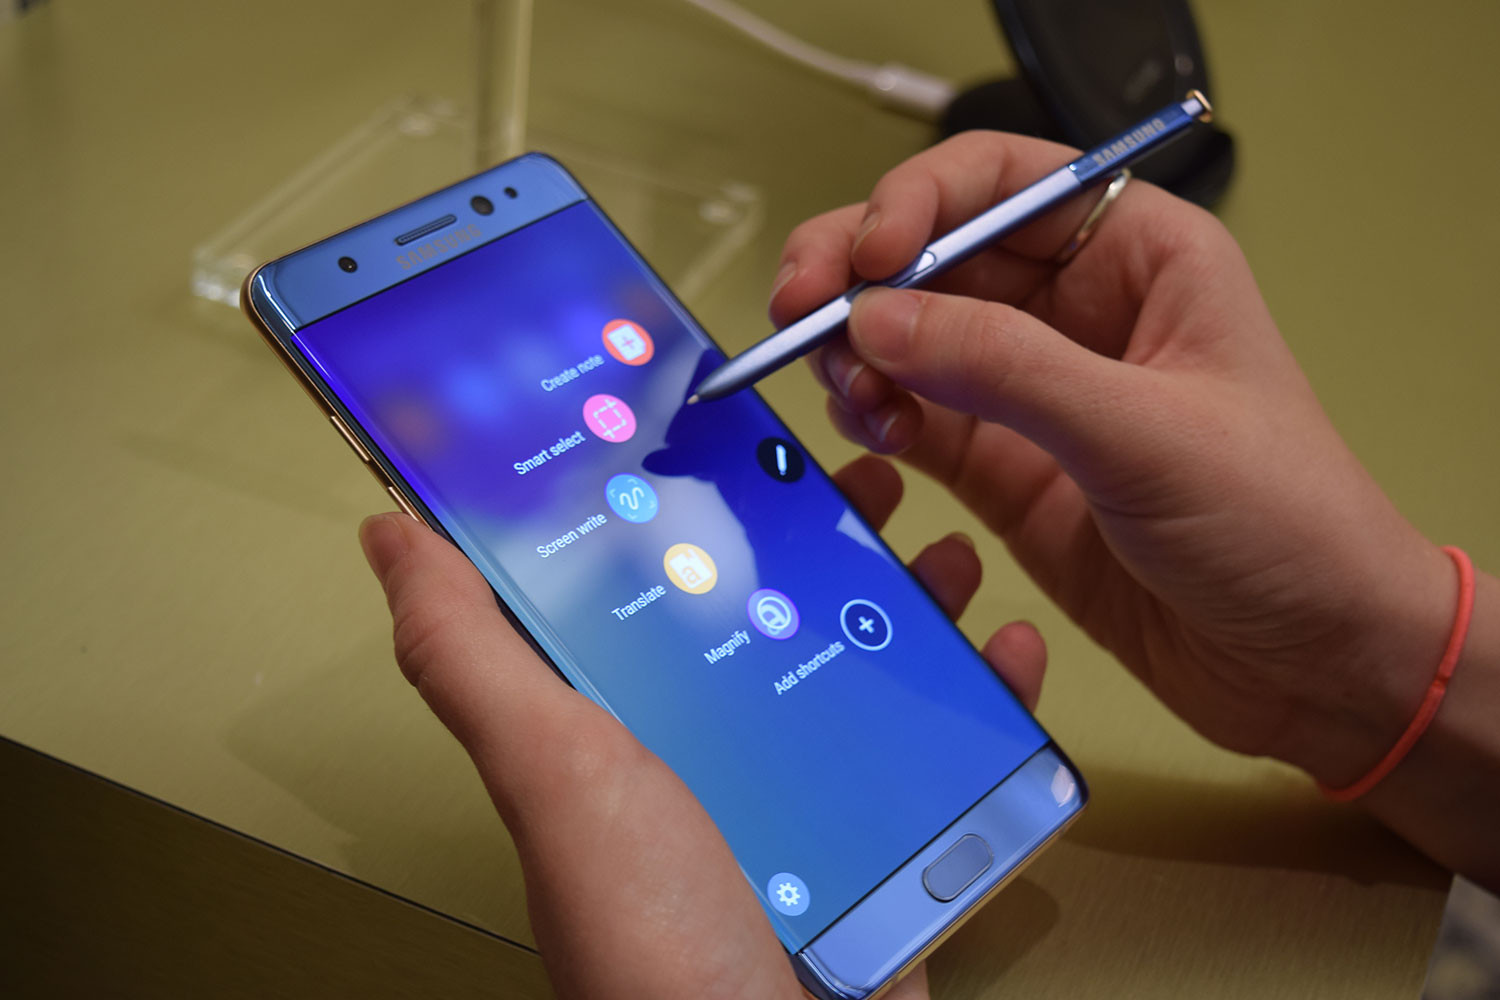 Galaxy Note 7 is not the only Samsung product with problems